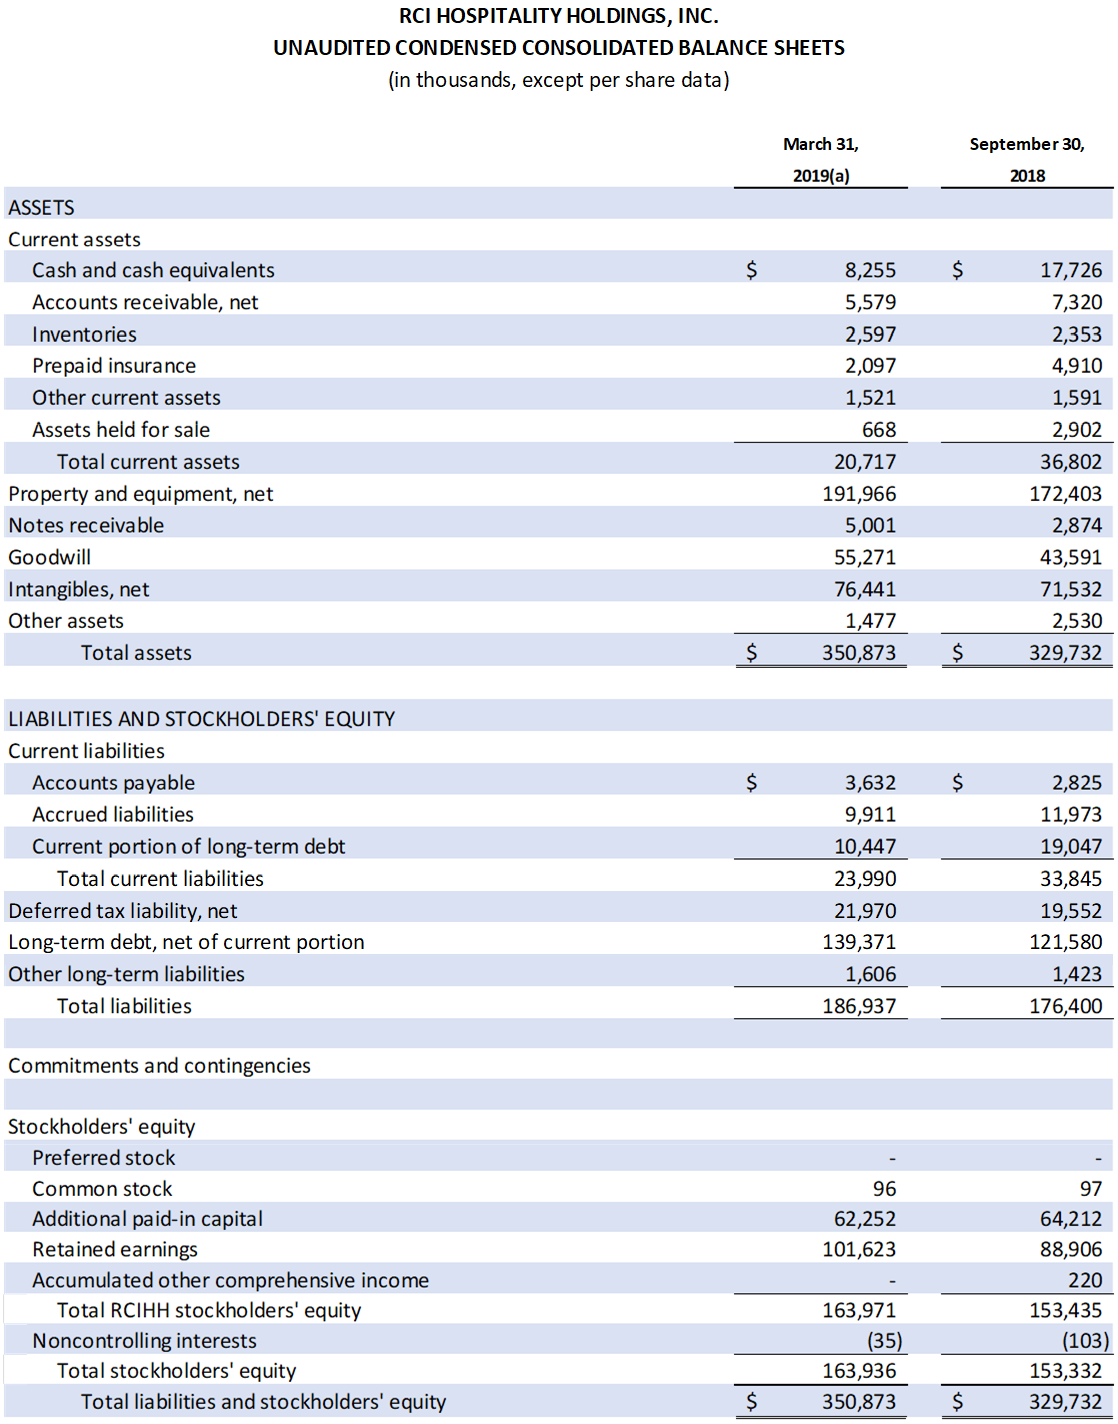 Table: Unaudited Condensed Consolidated Balance Sheets